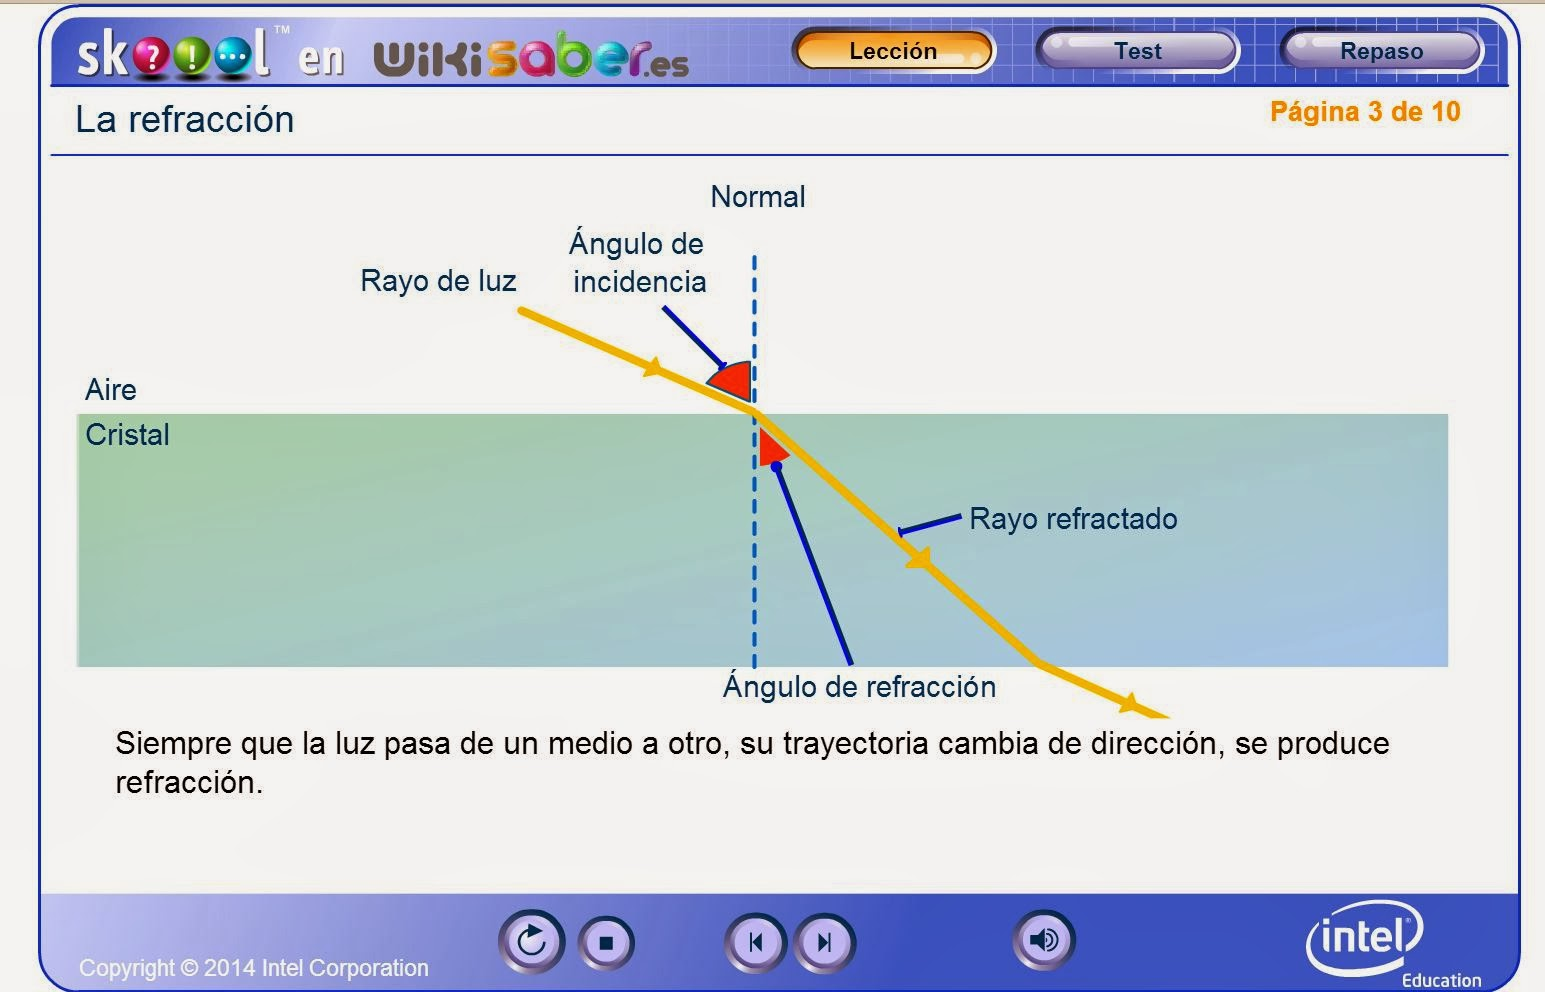 http://www.wikisaber.es/Contenidos/LObjects/refraction/index.html